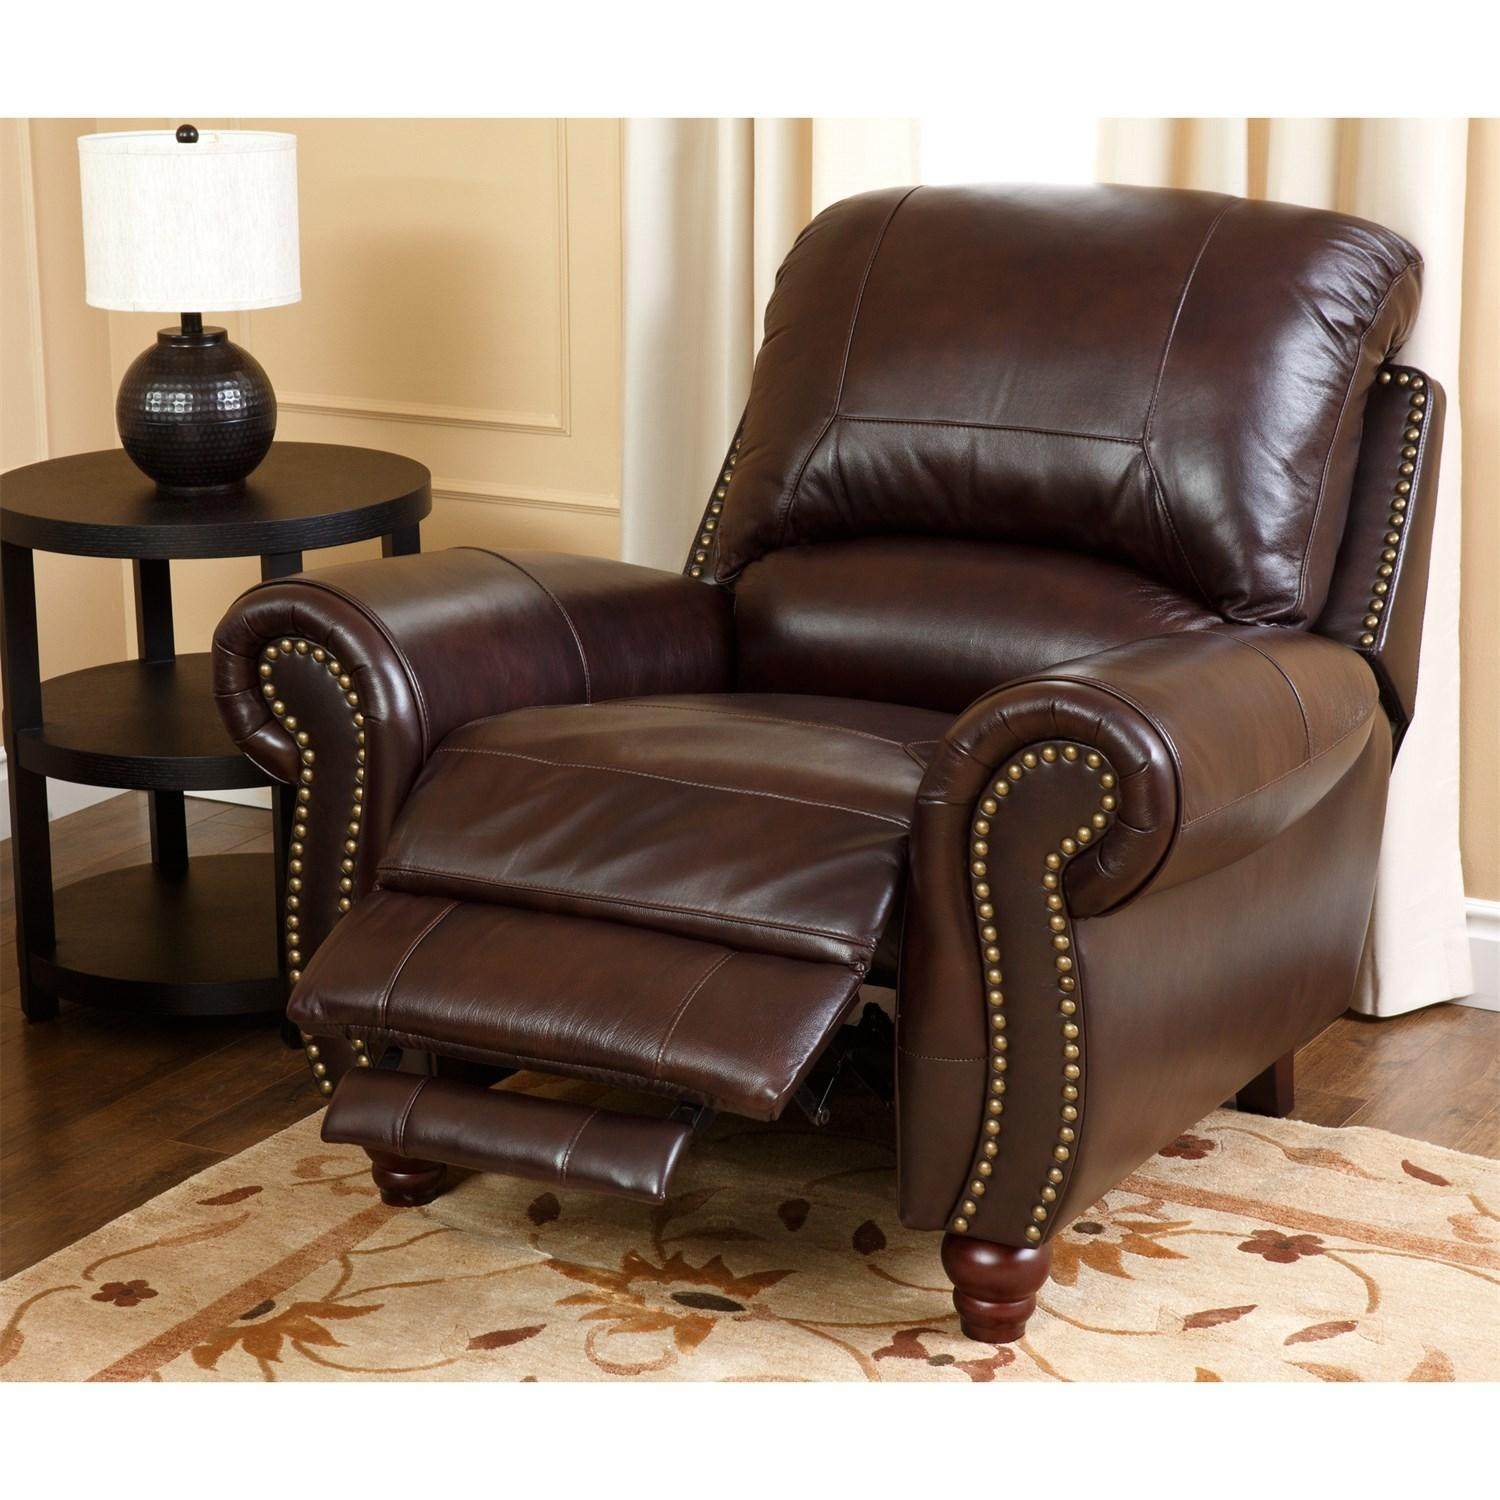 Abbyson Living Ch 8857 Brg 1 Canterbury Leather Pushback Reclining Pertaining To Abbyson Recliners (View 10 of 20)